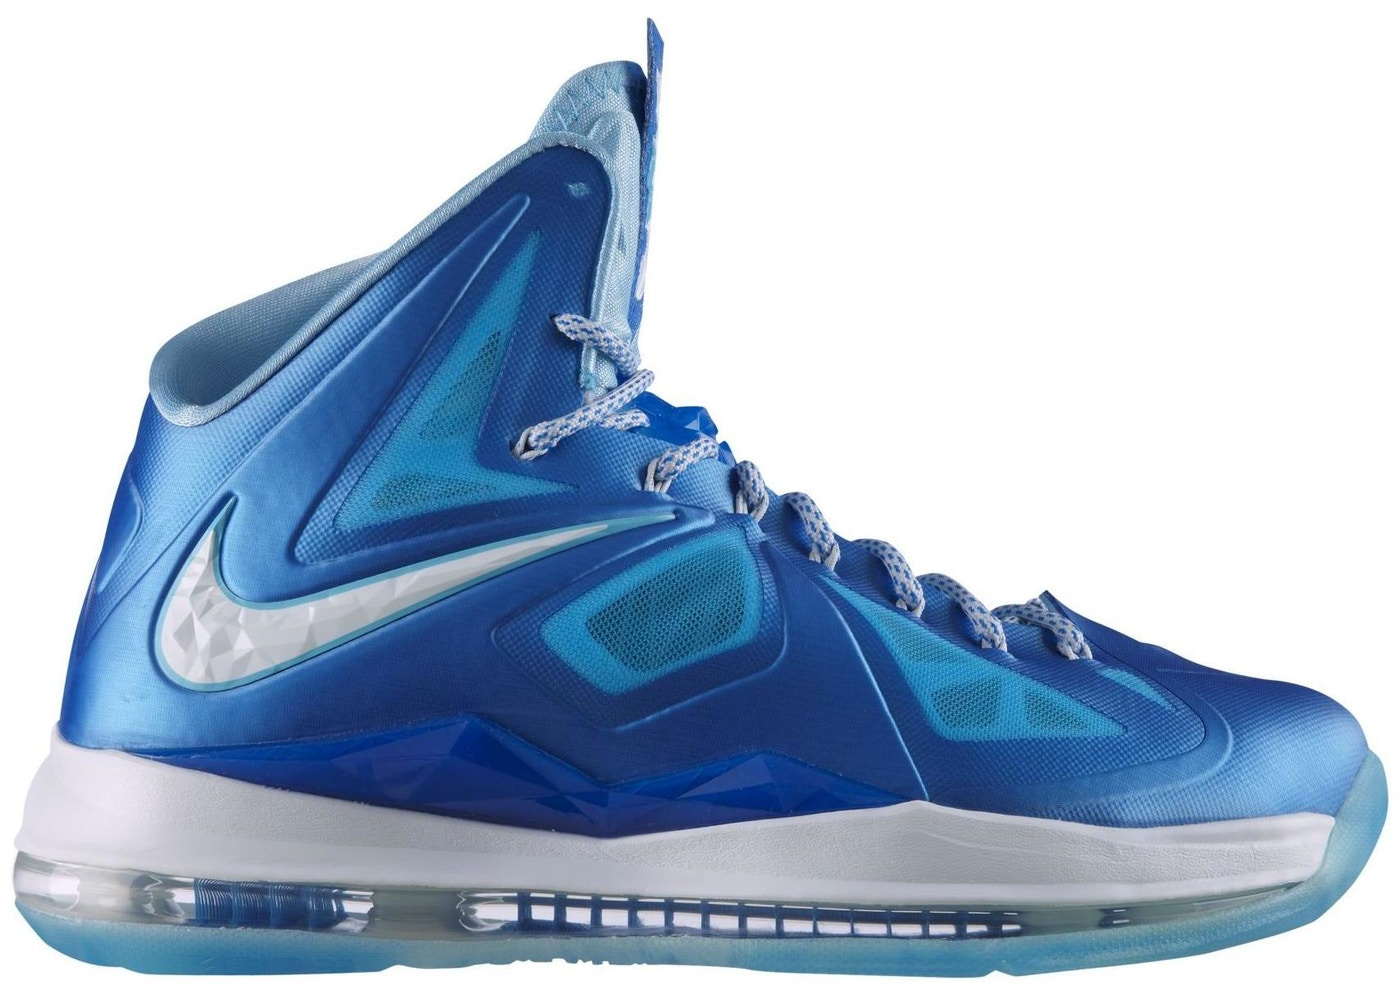 52bee183990 Nike LeBron 10 Shoes - Average Sale Price